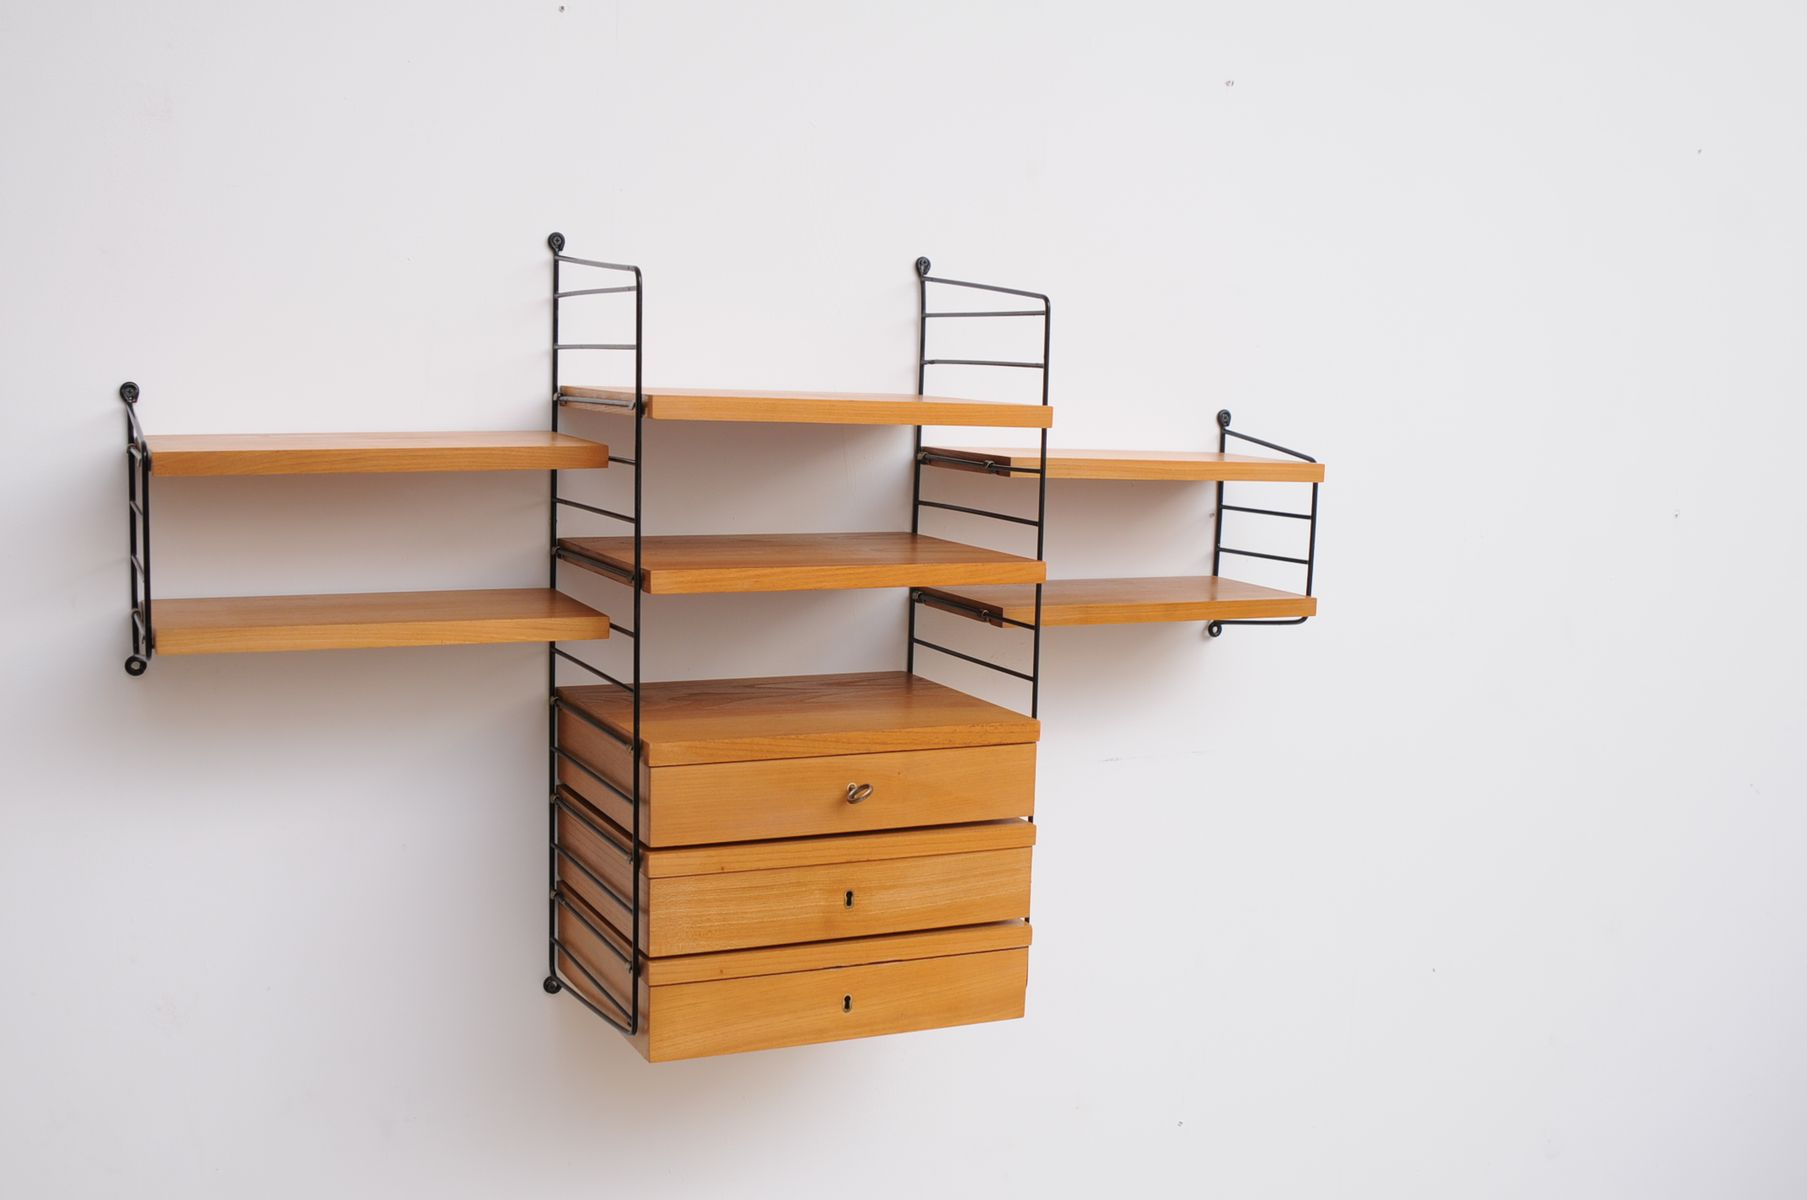 Nisse Strinning vintage shelving system in cherry by nisse strinning for